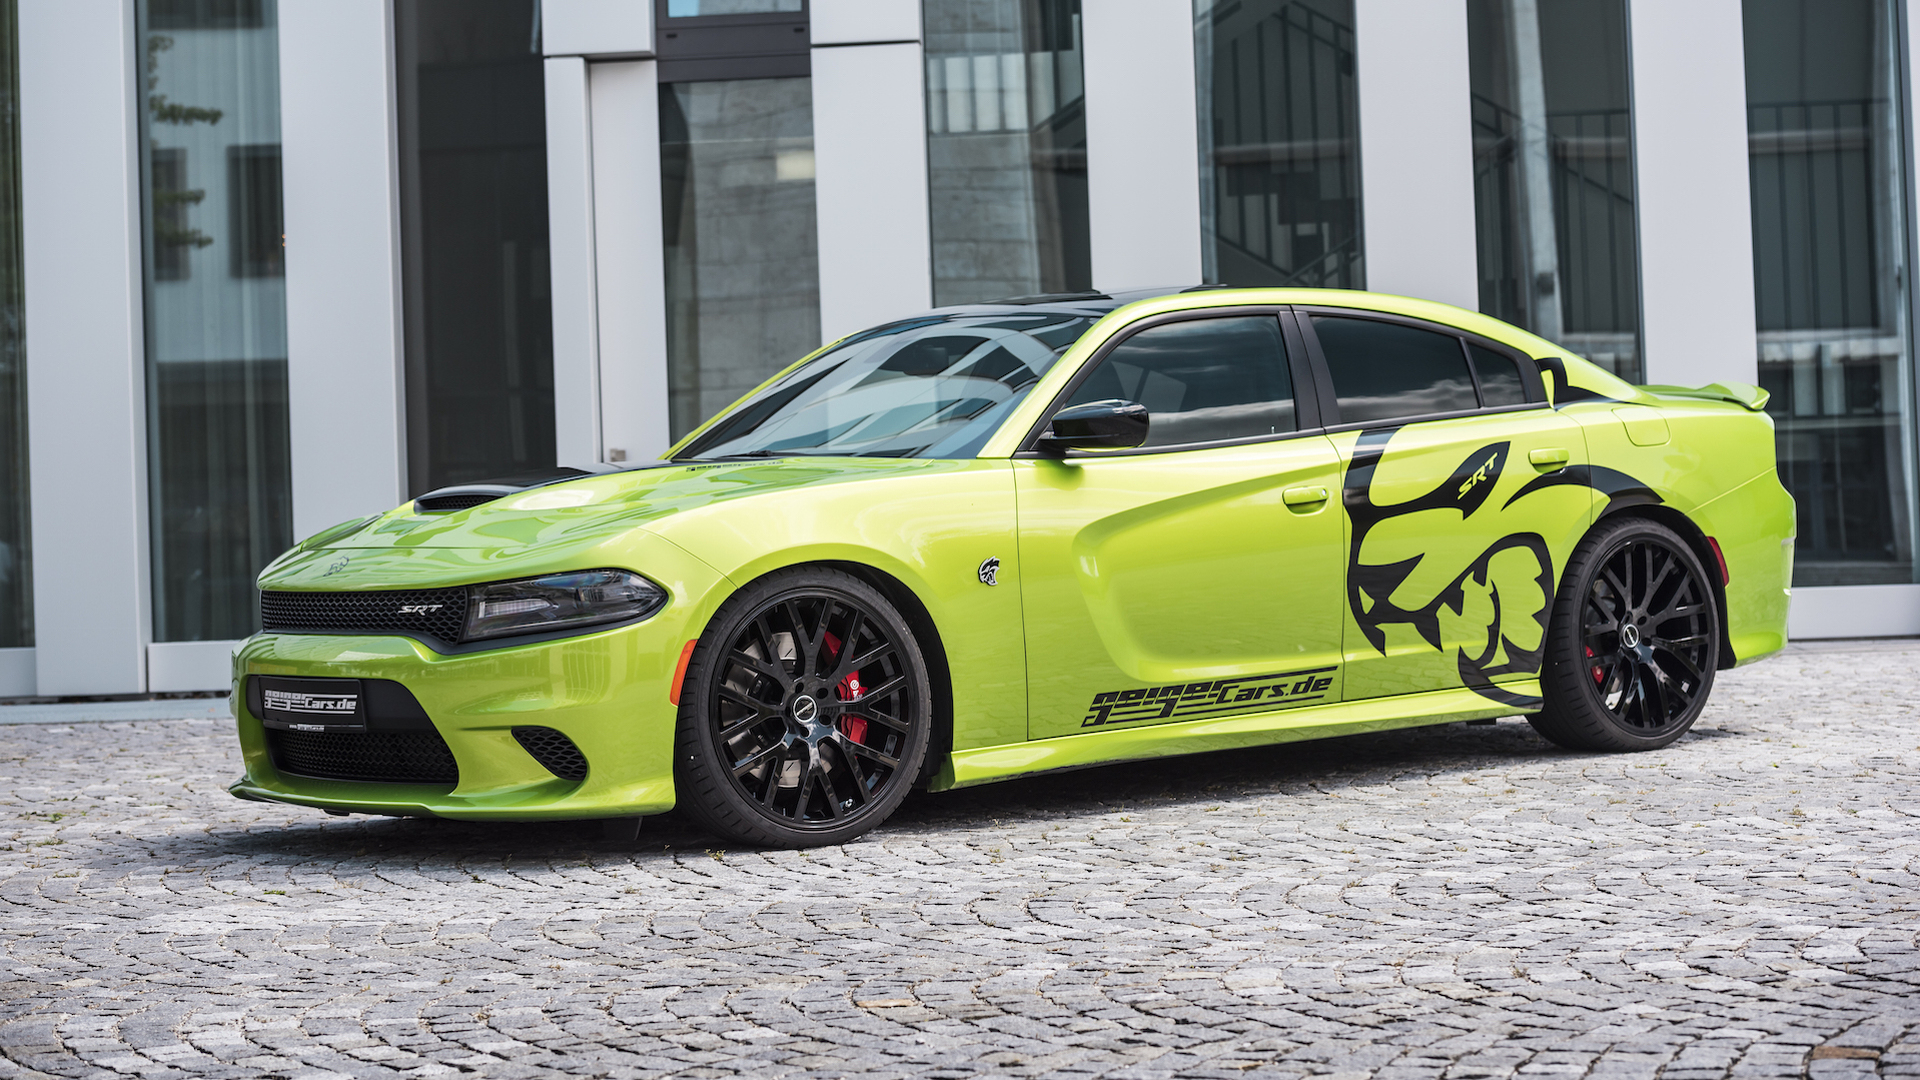 Dodge Charger Hellcat Price >> German Tuned Dodge Charger Srt Hellcat Unleashes 782 Horsepower